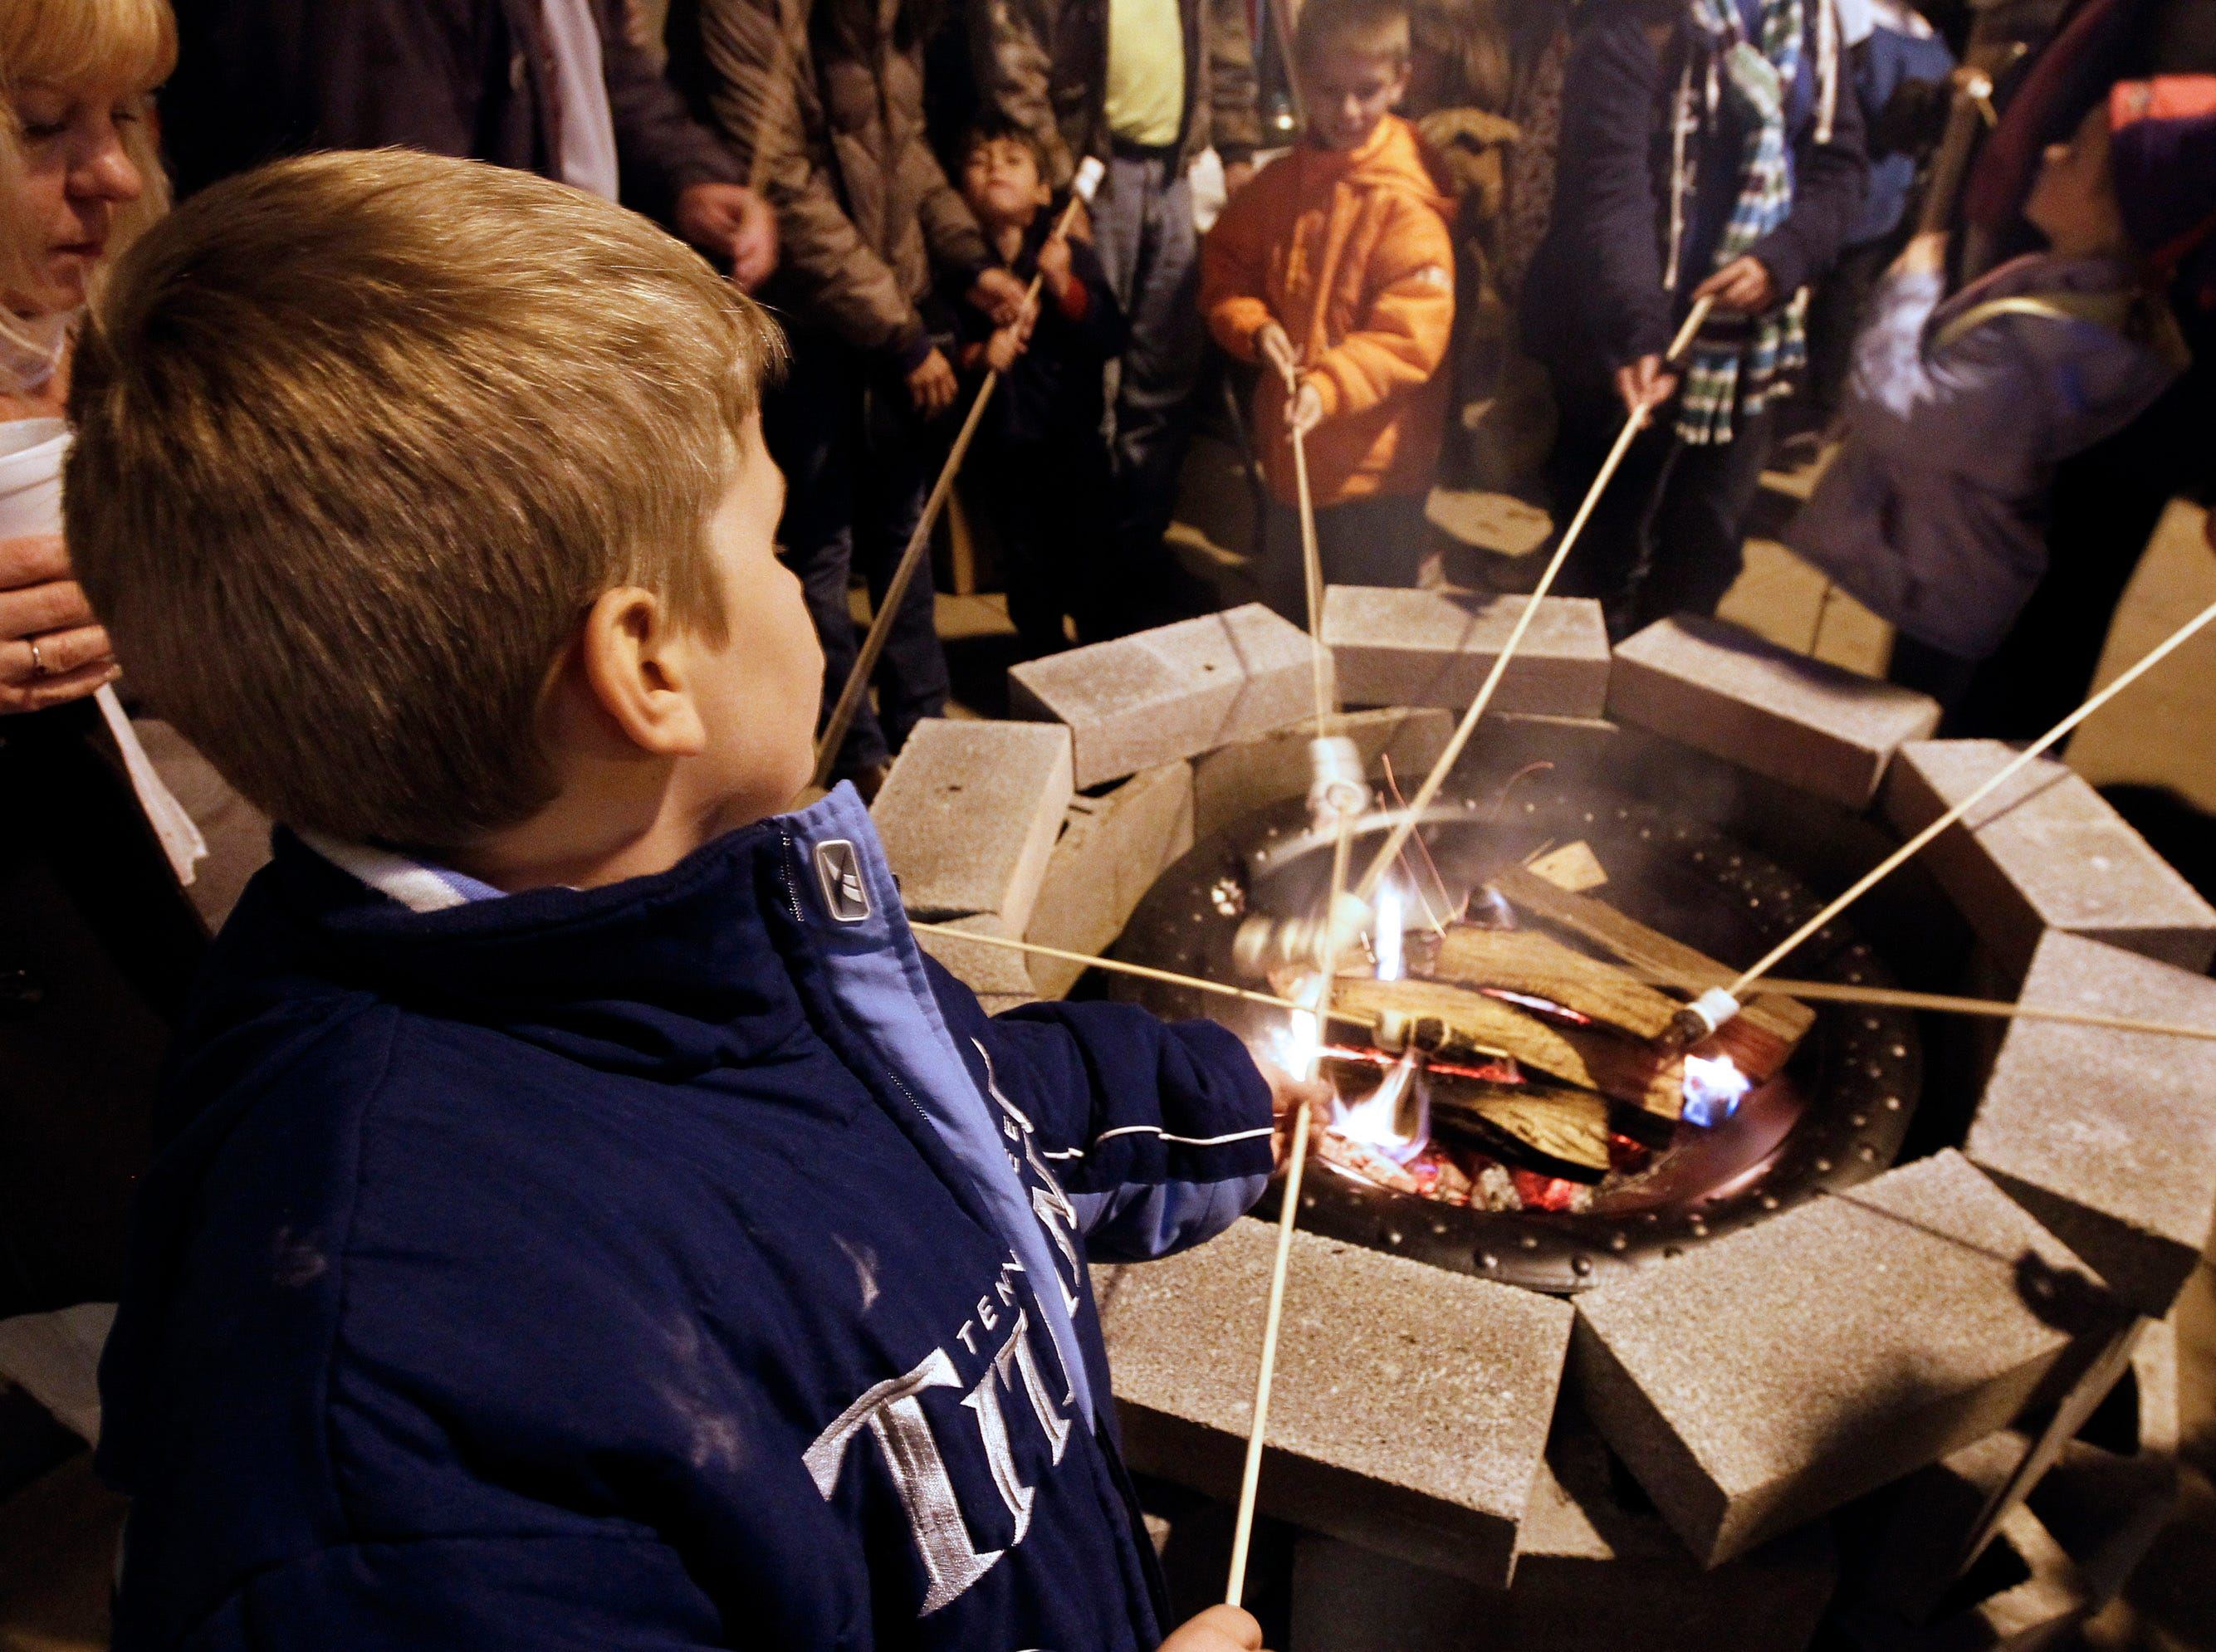 Tristian Neff of Kingston roasts marshmellows at fire pit on Market Square Friday, Nov. 25, 2011. (Photo by Wade Payne, Special to the News Sentinel)